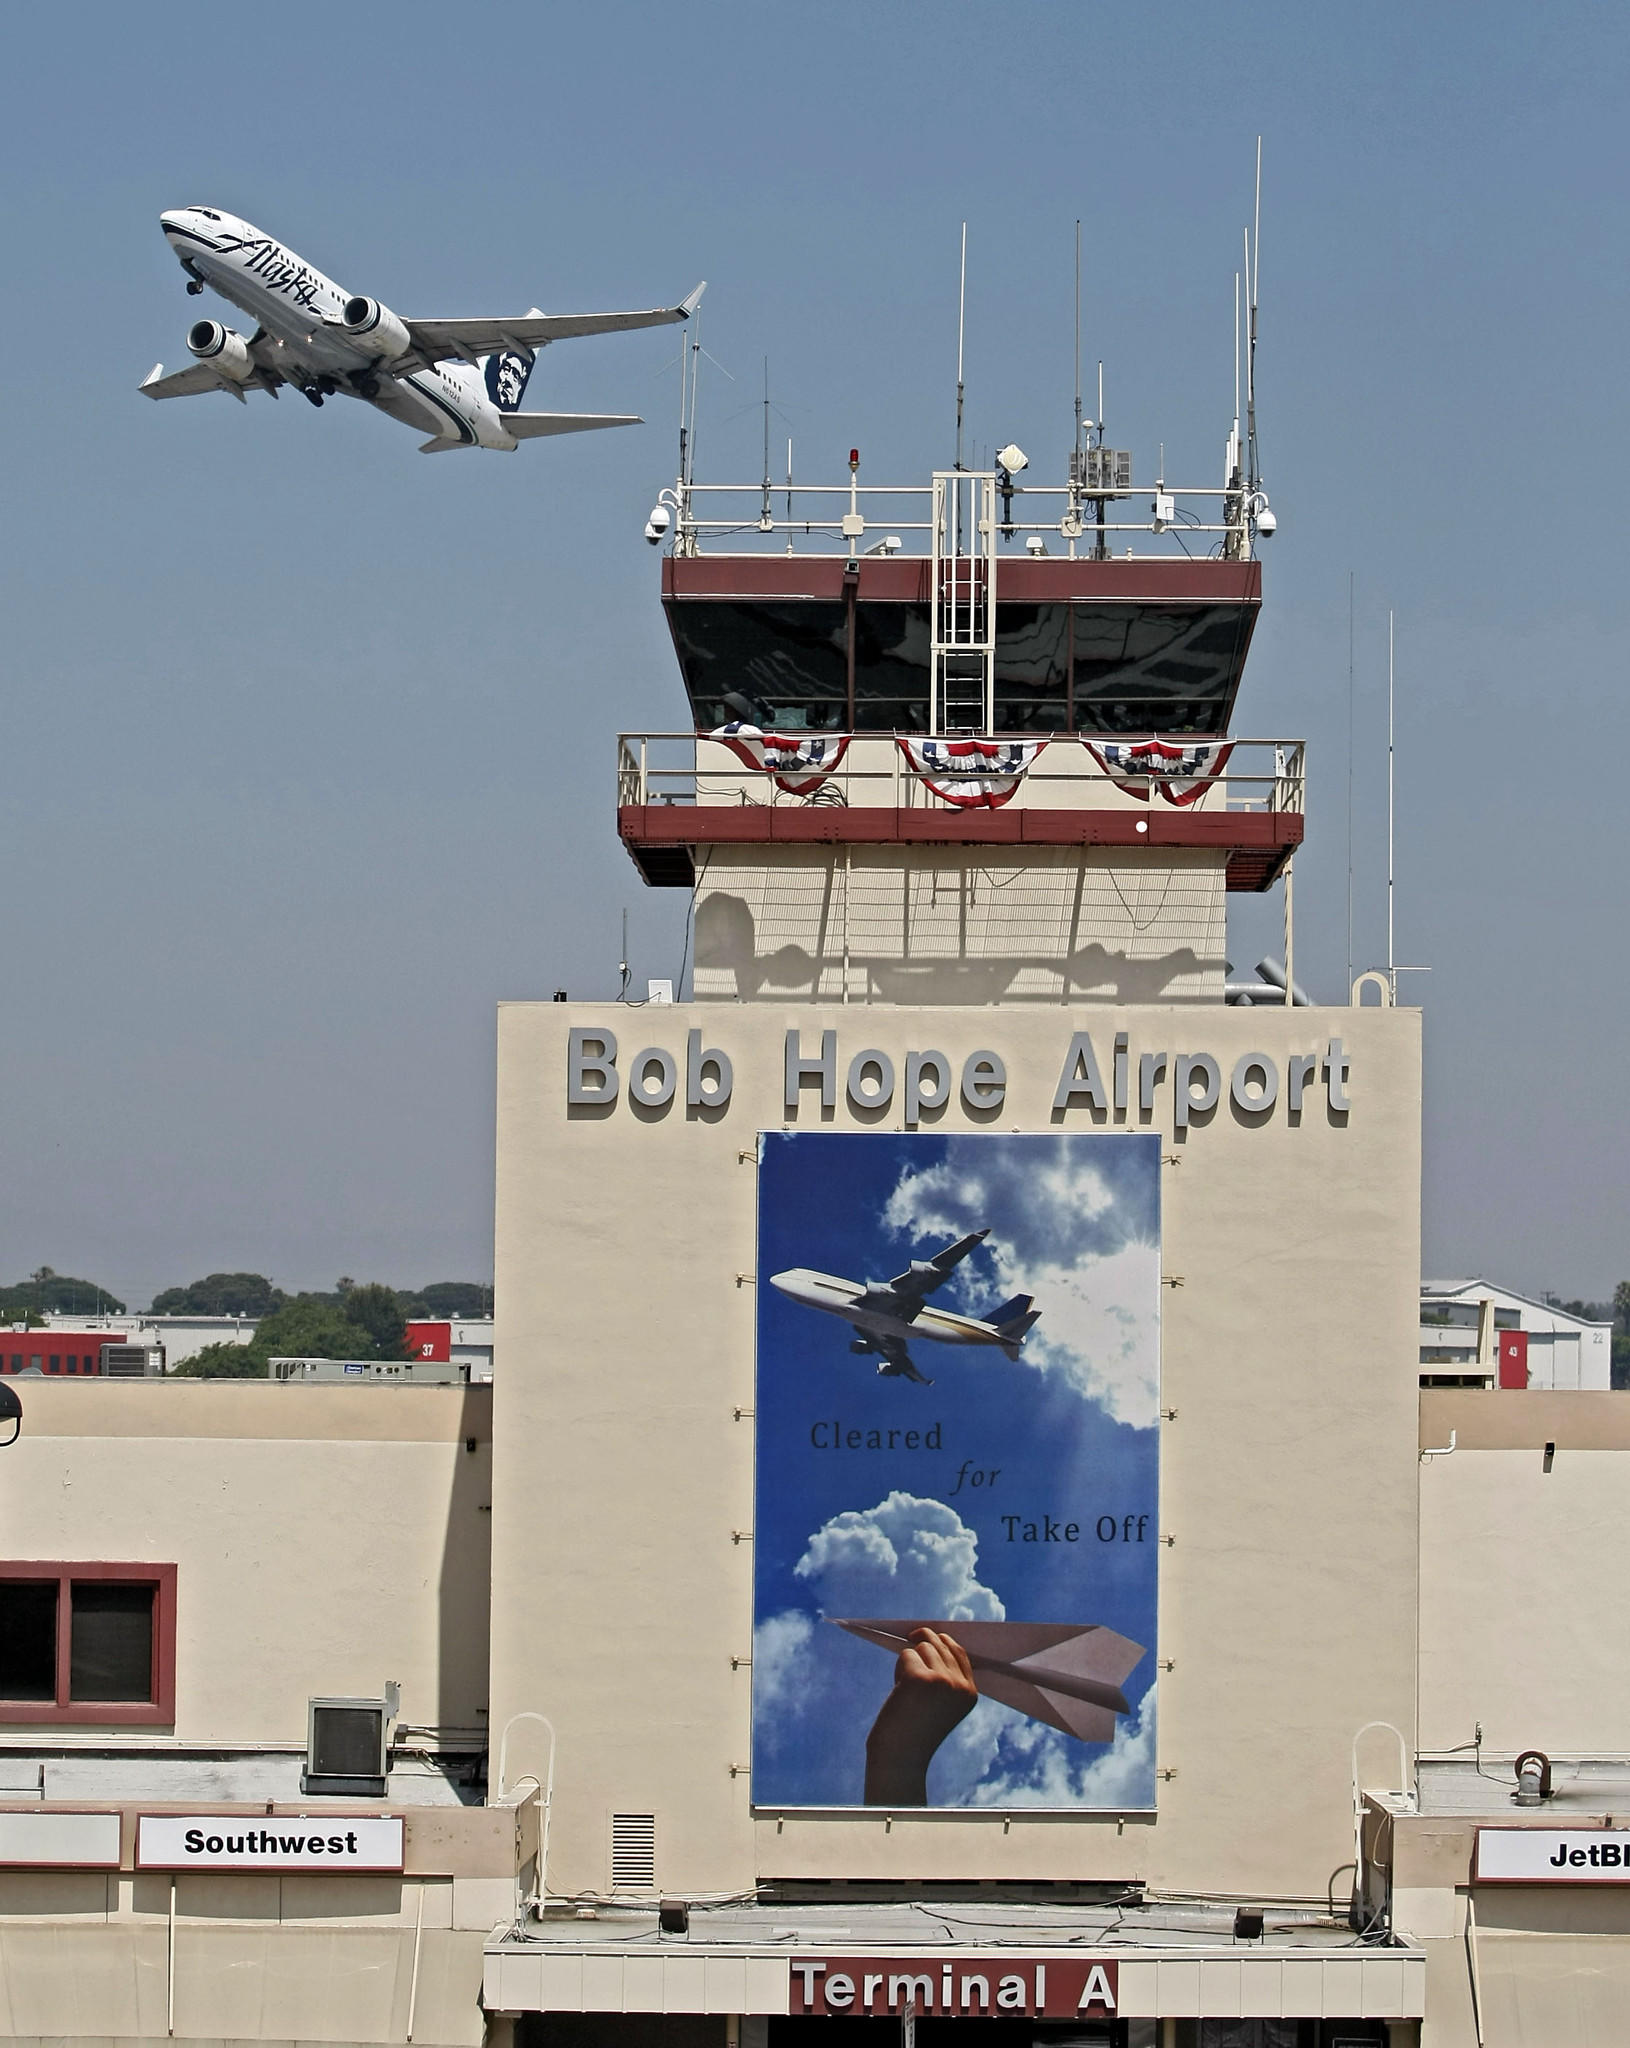 An airplane takes off from the Bob Hope Airport in Burbank on Tuesday, August 6, 2013.